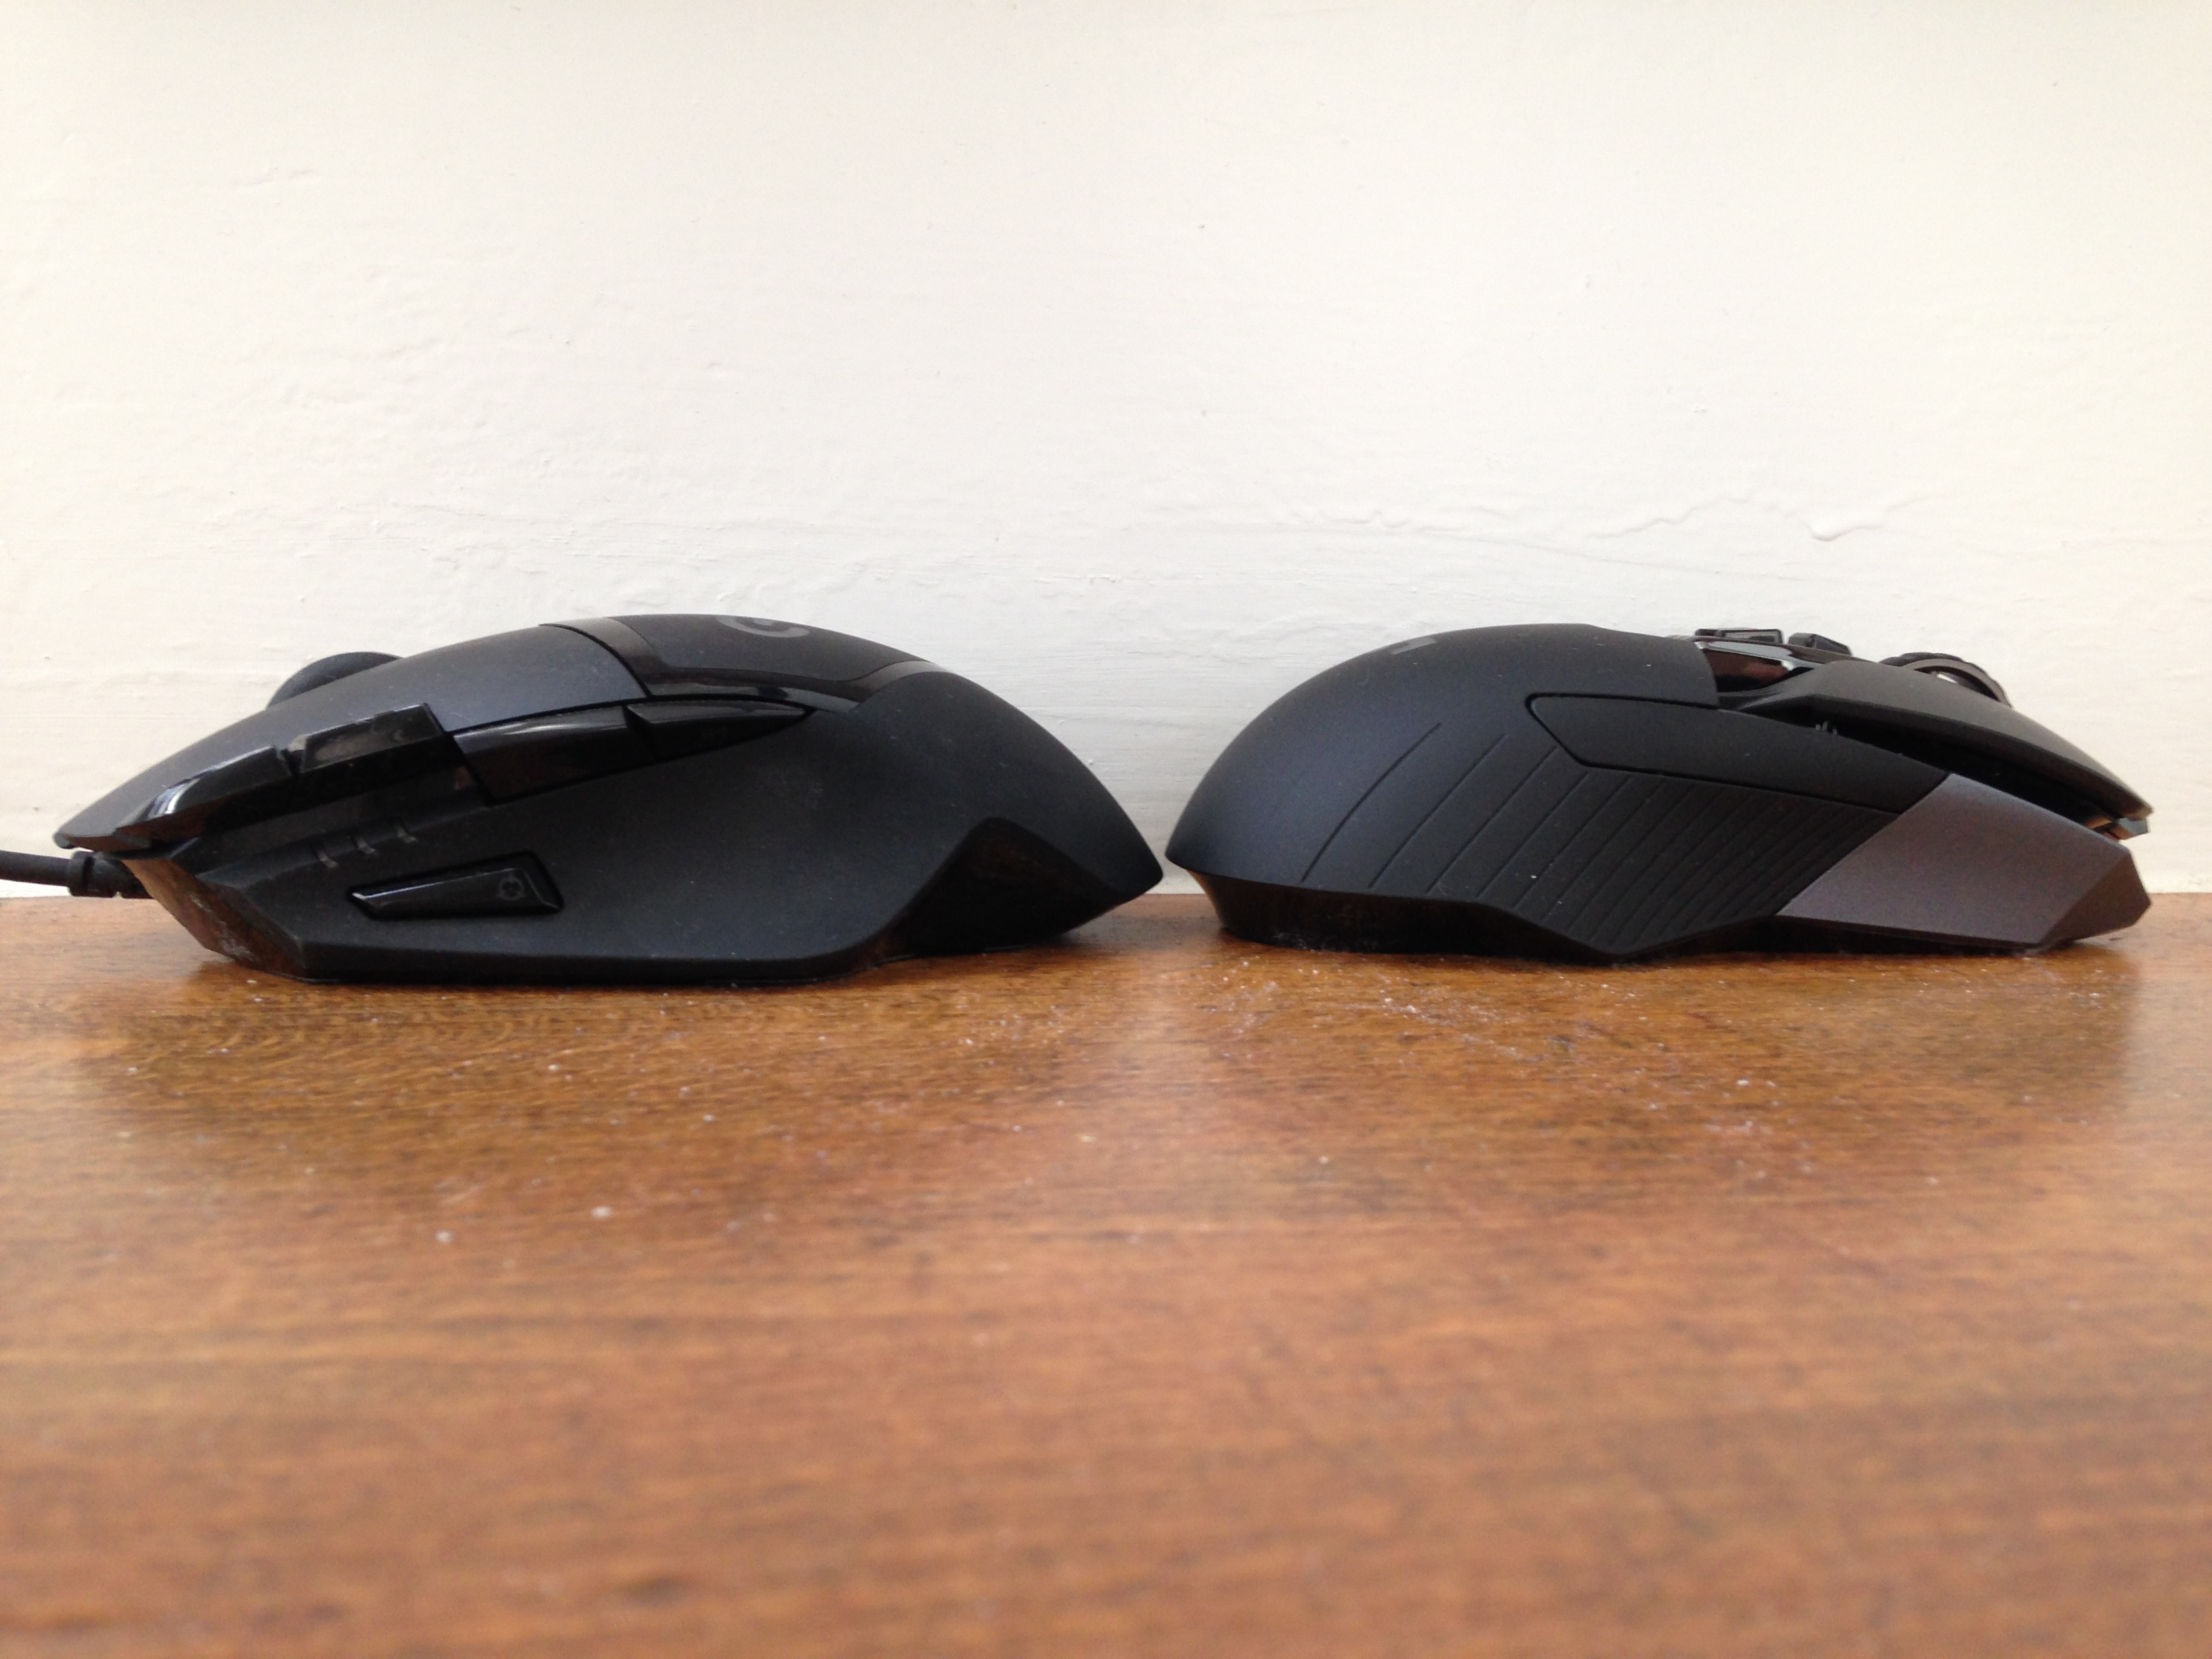 8873ed54aa3 Review of Logitech G900 Chaos Spectrum Wireless Gaming Mouse - by ...